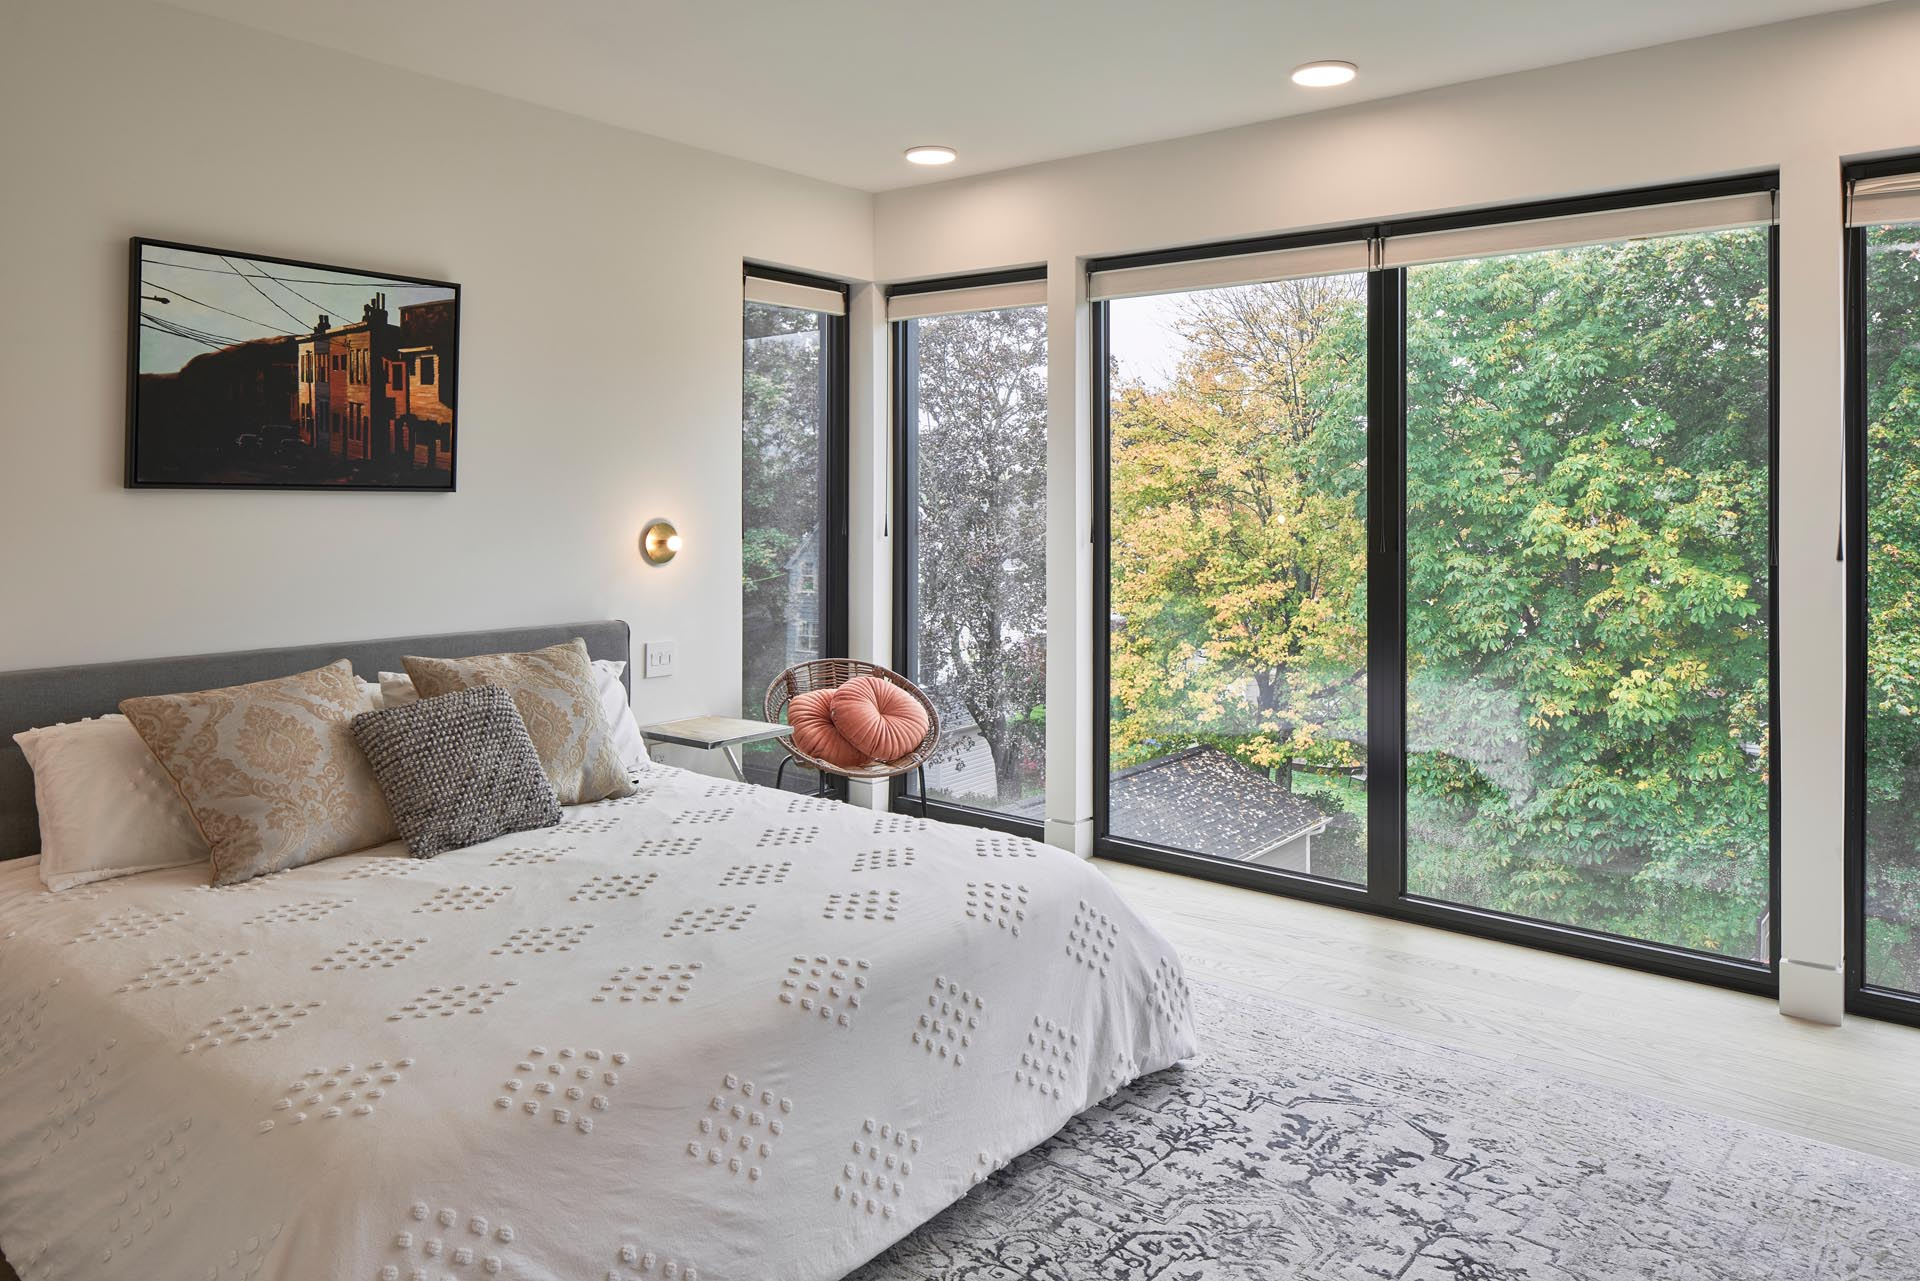 A modern bedroom with large black-framed windows that showcase the greenery outside.